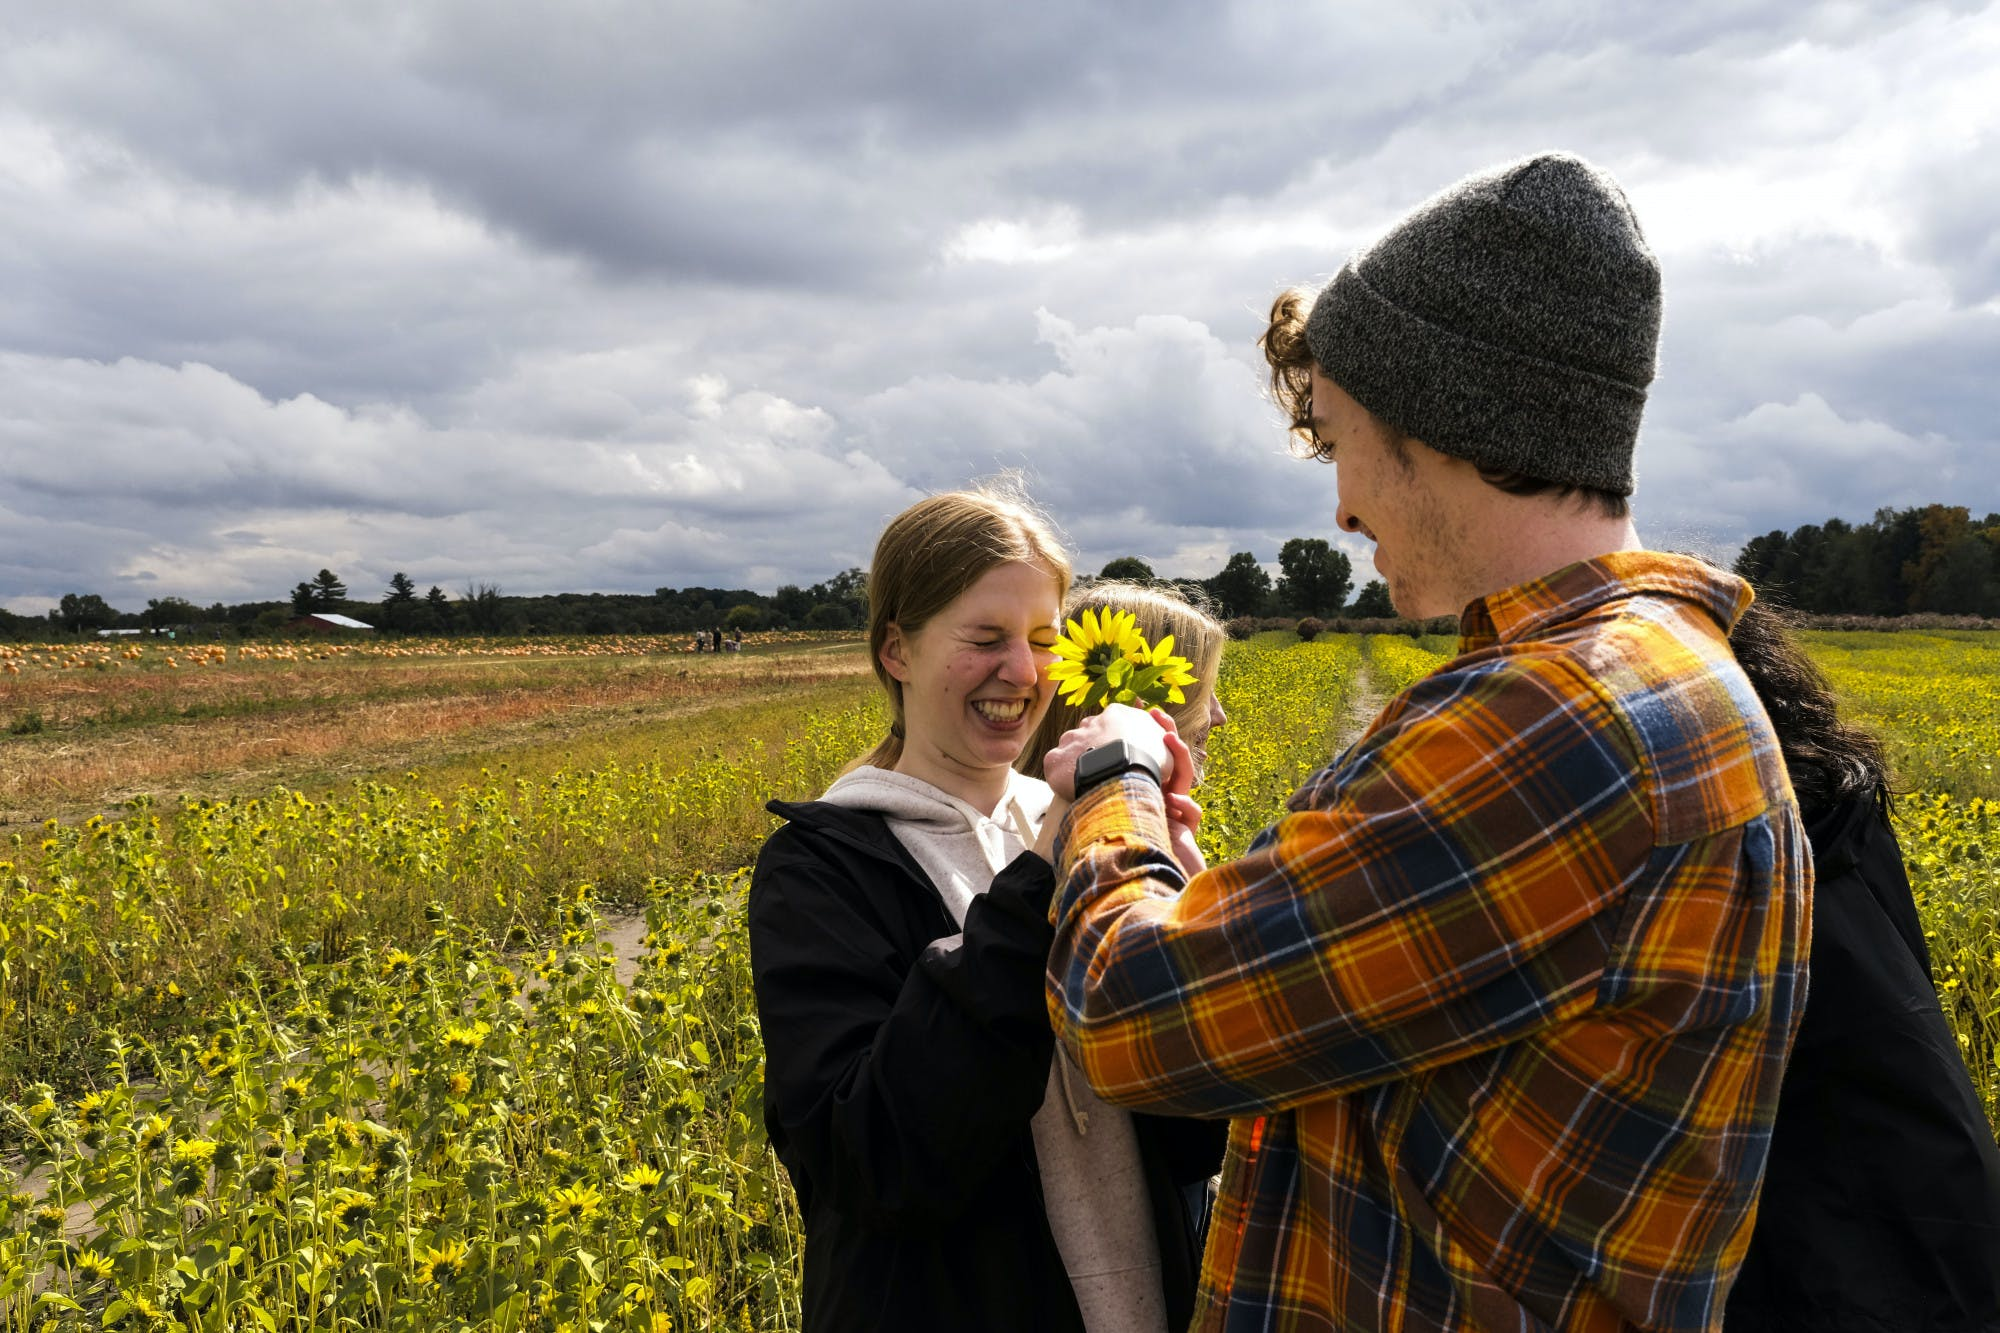 Two people stand in a field and hold sunflowers.